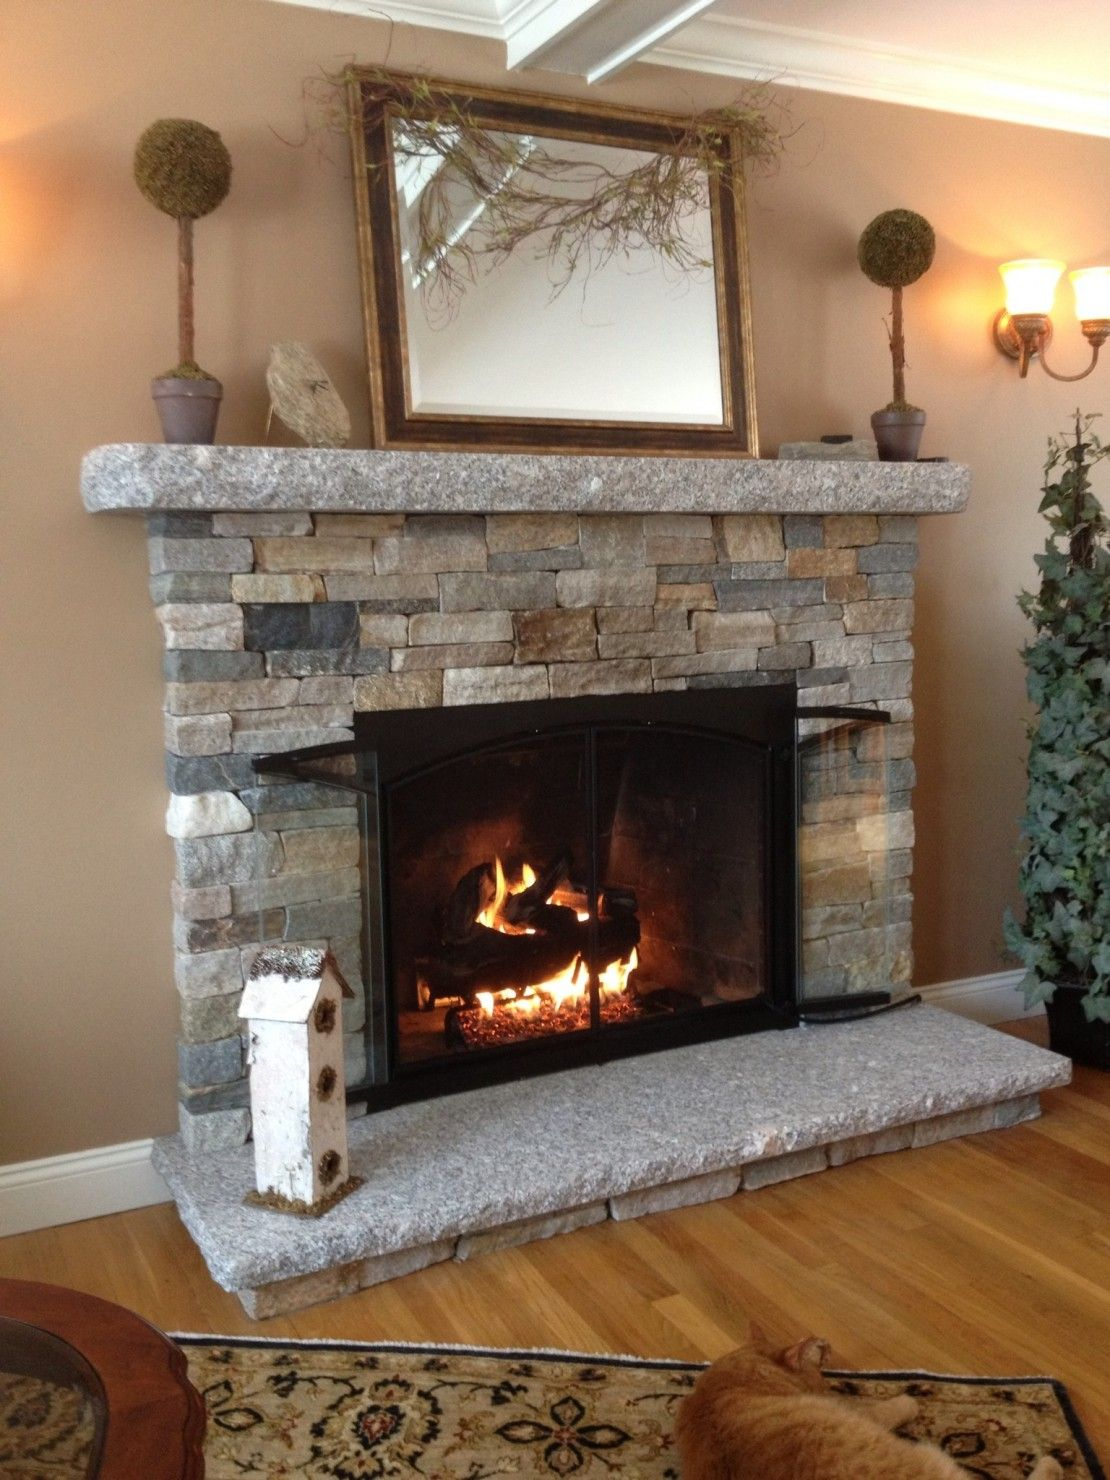 Remodelling light grey fireplace stone into field stone for natural